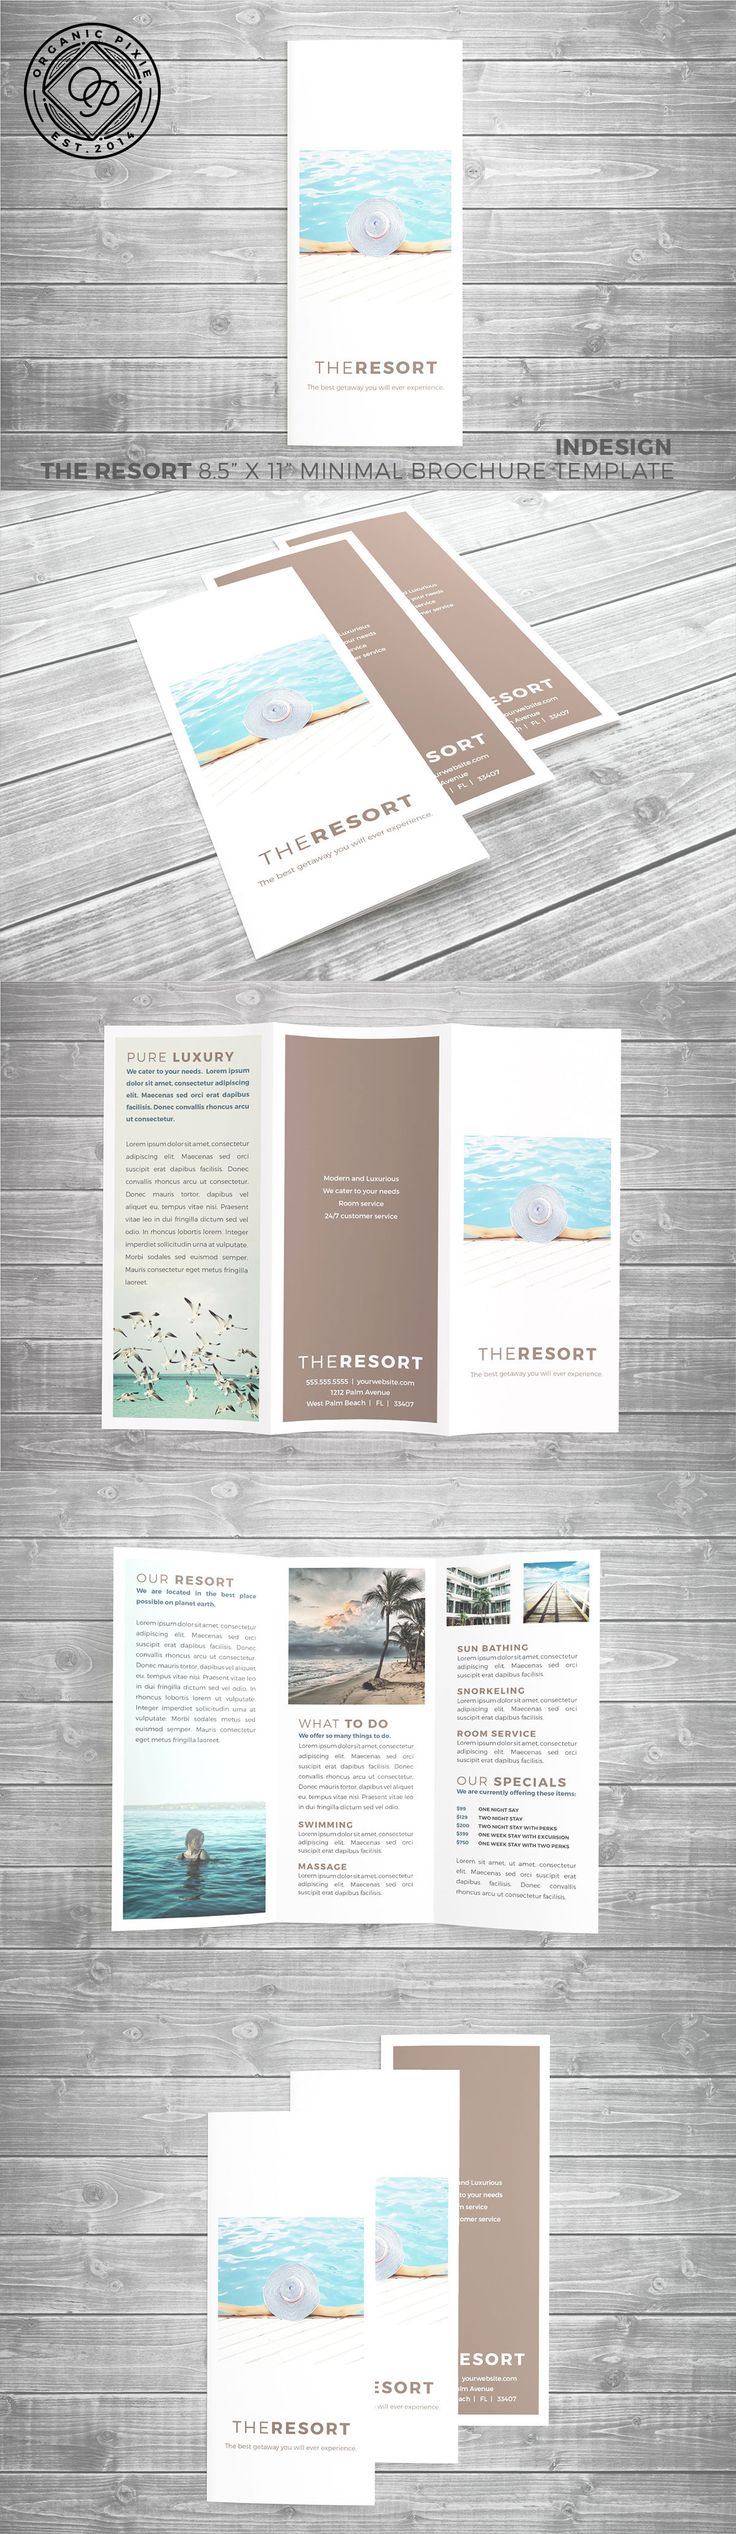 "This is an easy to use turn key vertical brochure design template in InDesign. Included are all the photos that are FREE to use downloaded from pixabay.com with no restriction.This brochure feels luxurious and has an ""apple"" type design without breaking the printing budget. This is a three panel print-ready standard sized brochure template. 8.5"" x 11"" flat folded Tri-fold. Easily export for print and upload to Vistaprint, Overnight Prints, Moo, etc..."